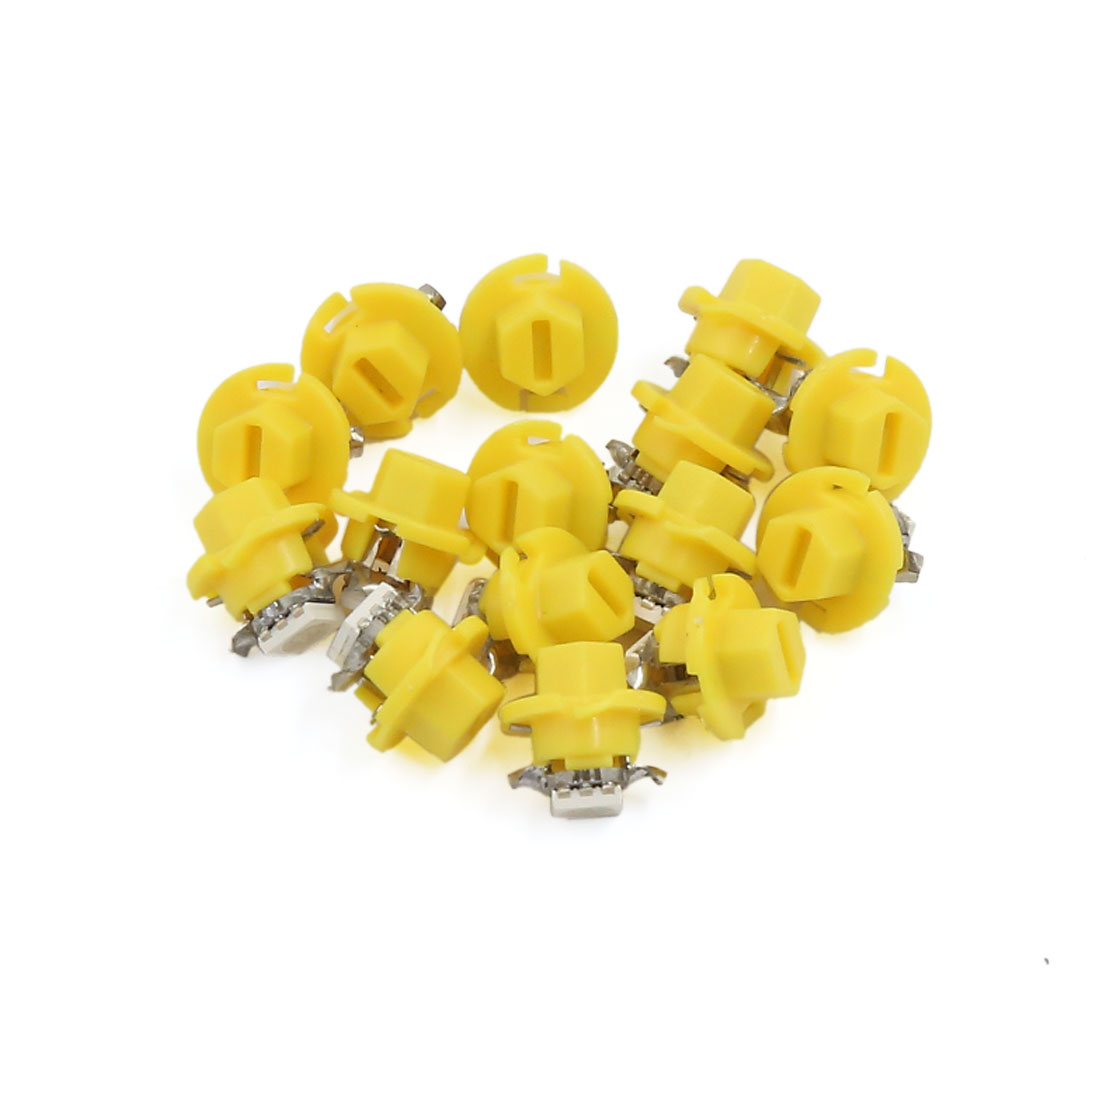 15pcs B8.4D Yellow Car Interior 5050 LED Dashboard Dash Wedge Side Light Bulb